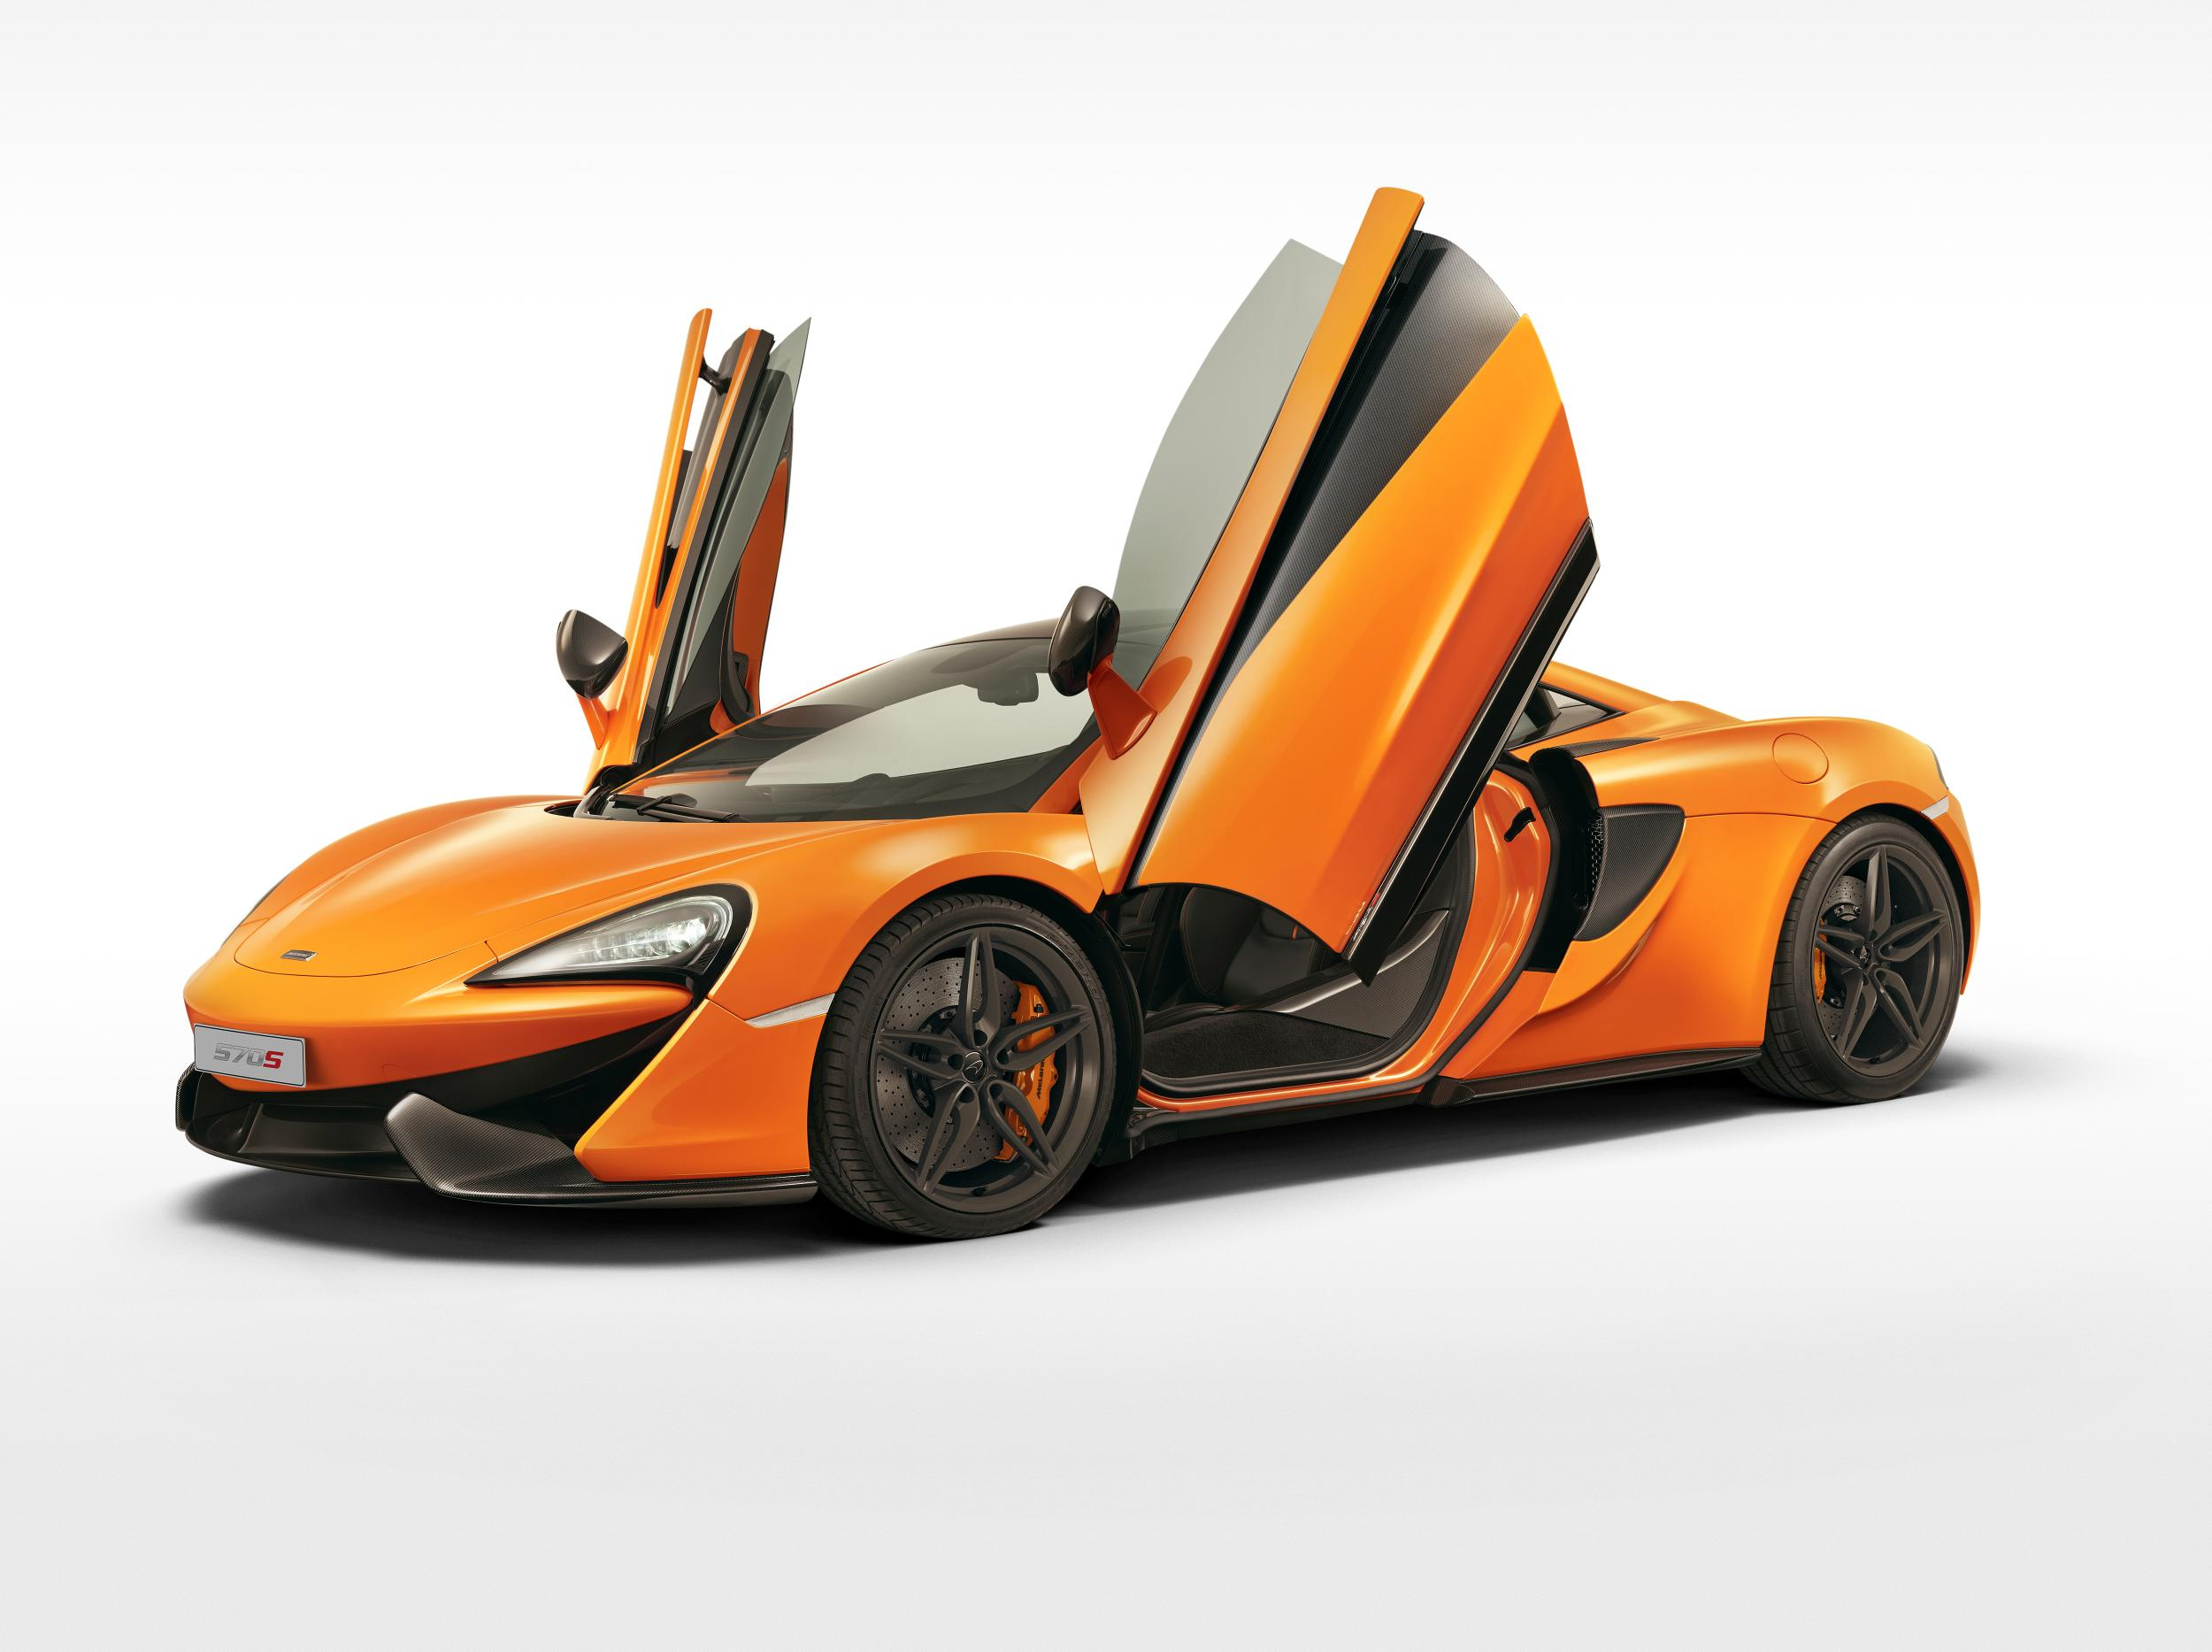 News - Entry Level McLaren 570S Launched In New York